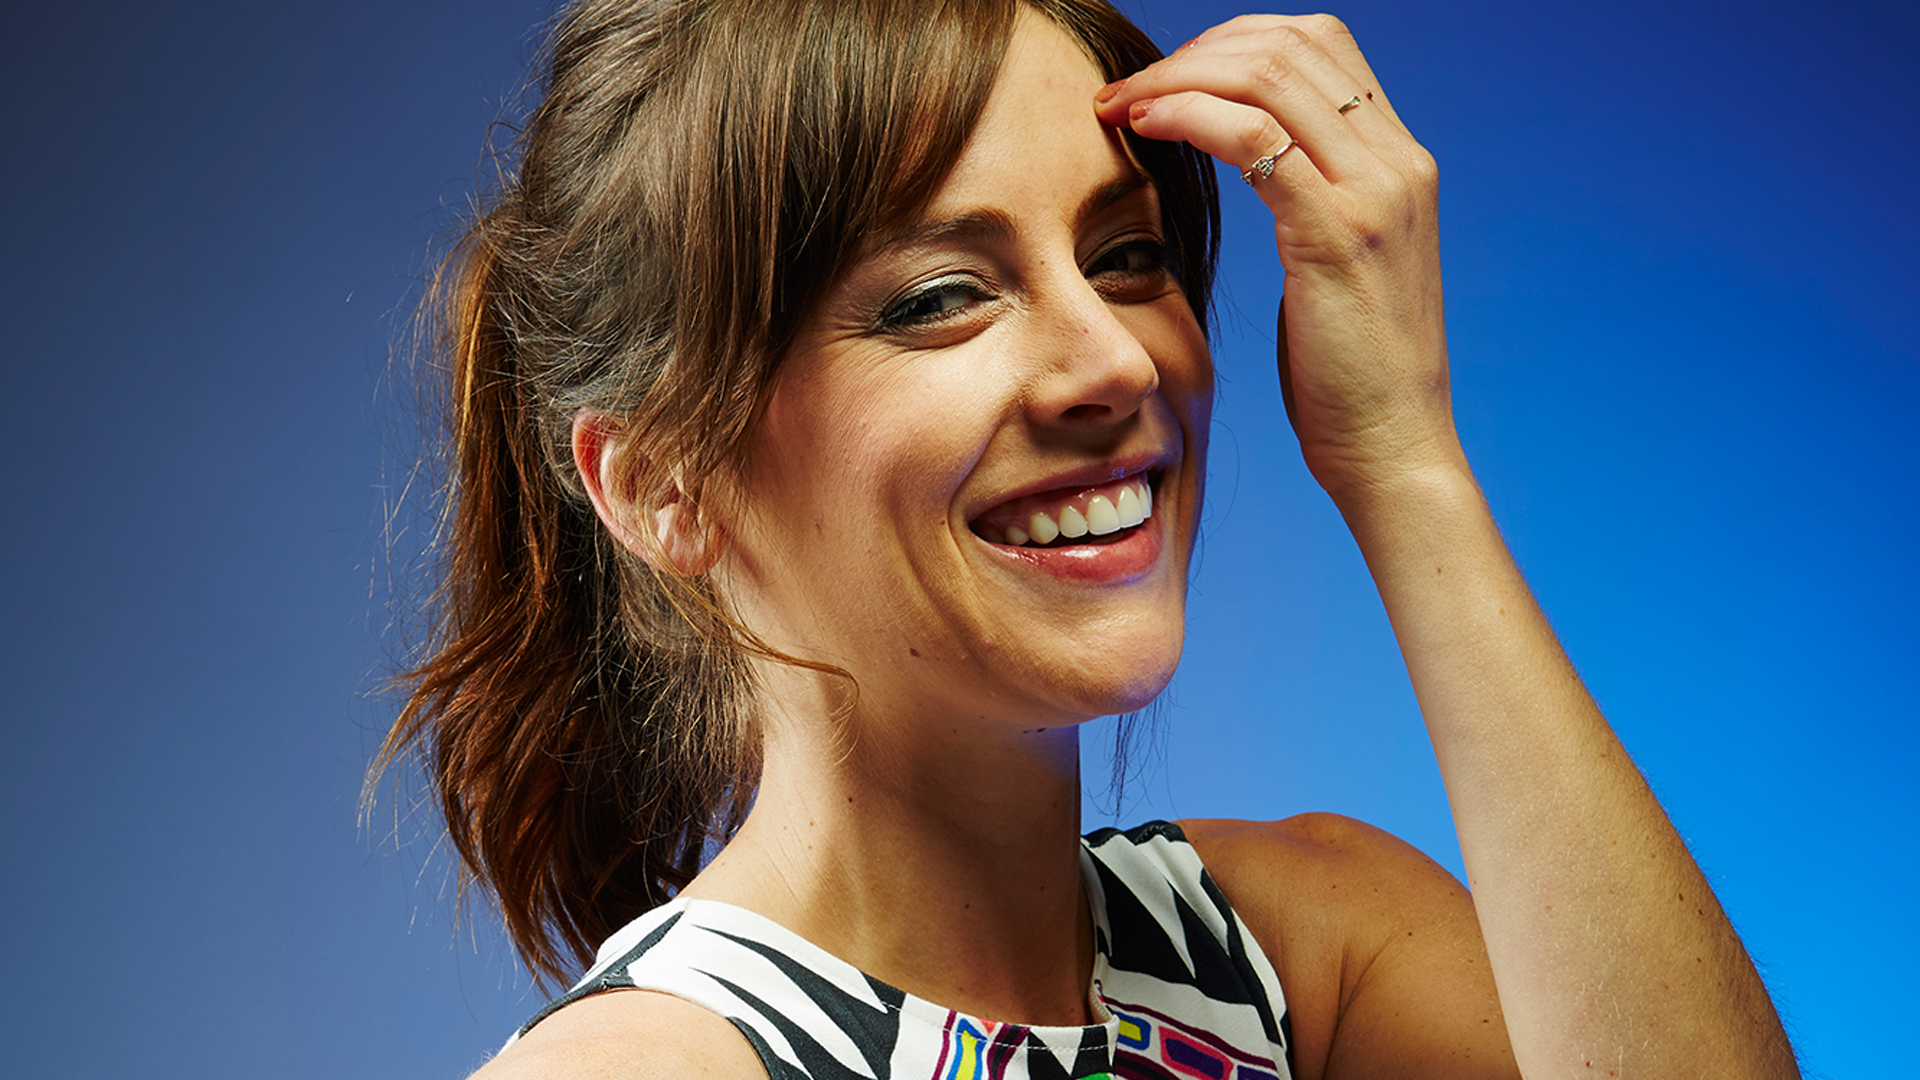 1920x1080 - Jessica Stroup Wallpapers 5